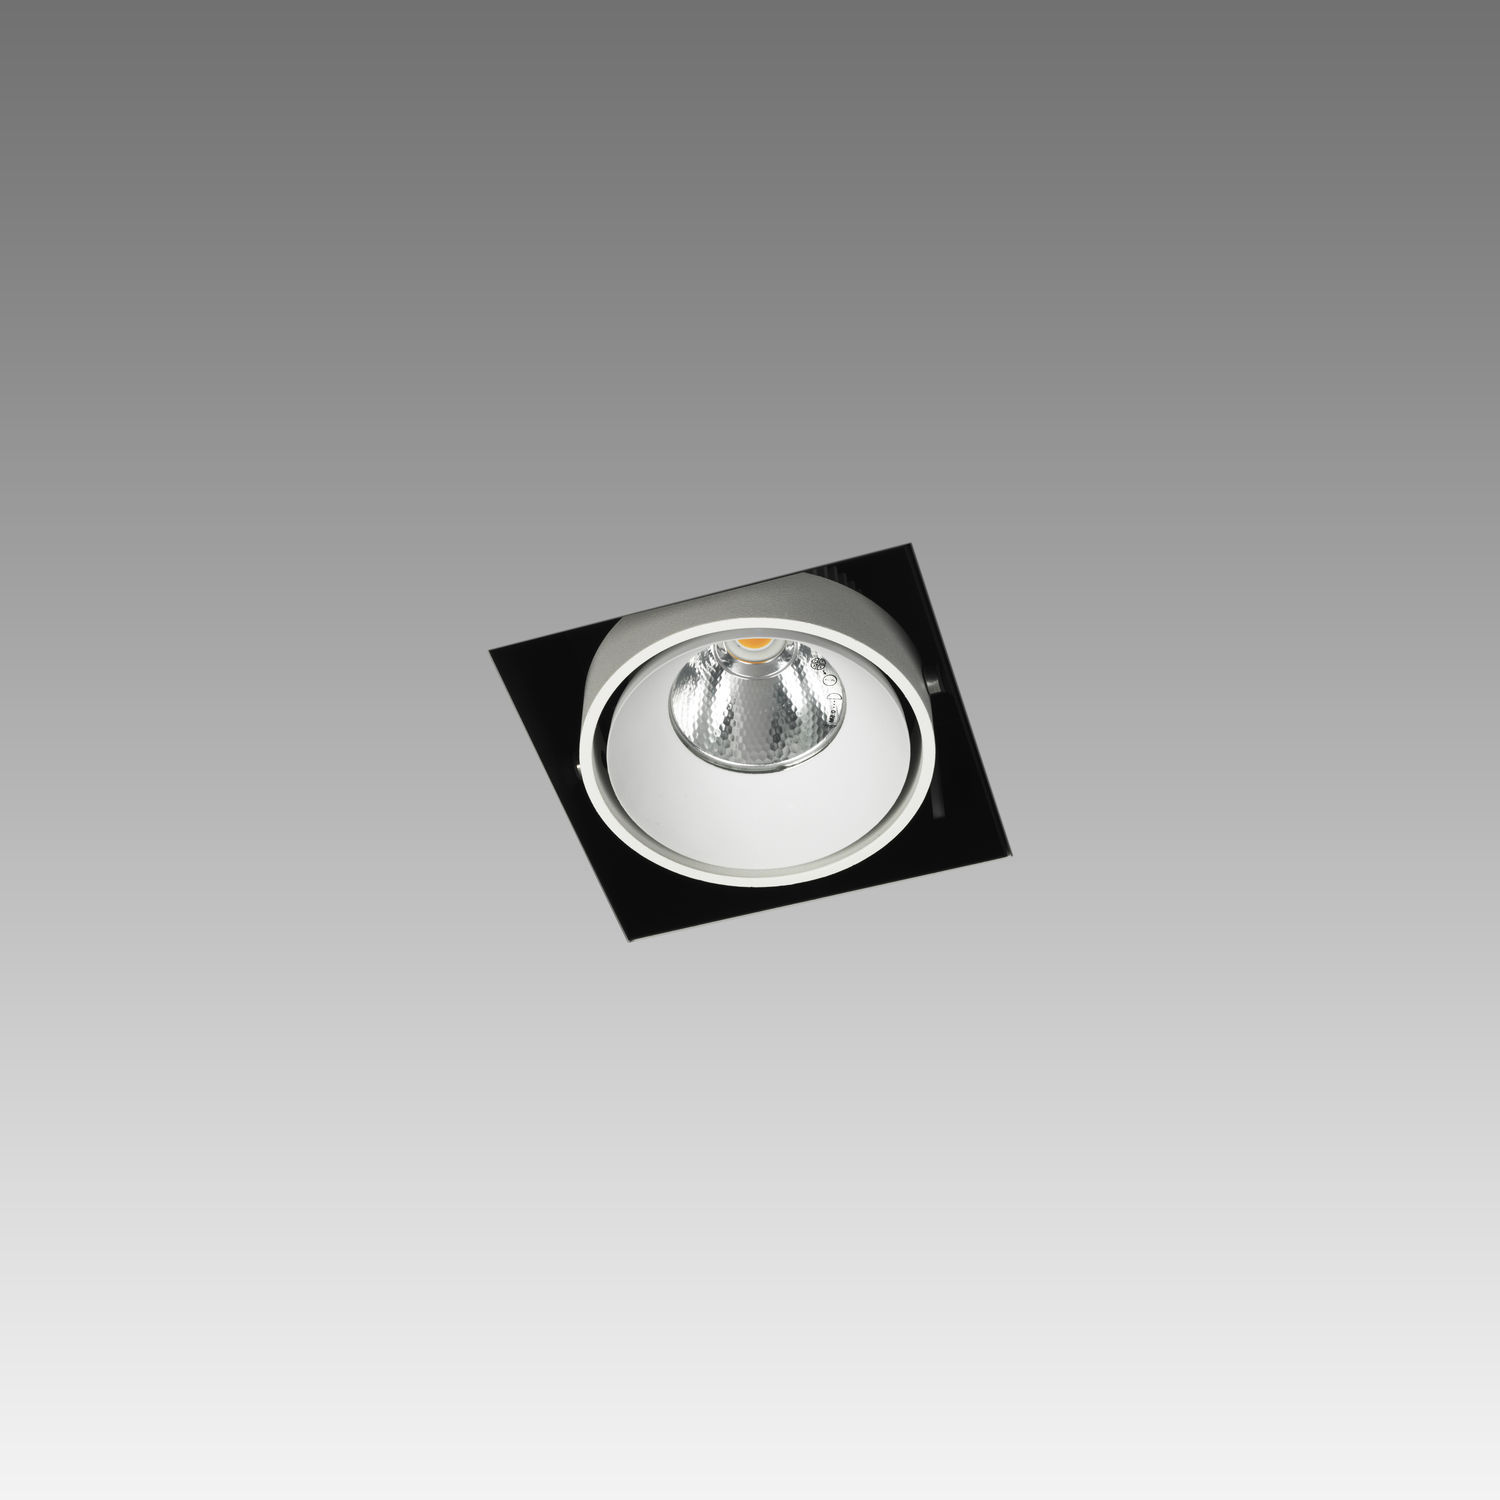 Recessed ceiling spotlight / indoor / LED / square - NO FRAME ... for Ceiling Double Spot Light  557yll